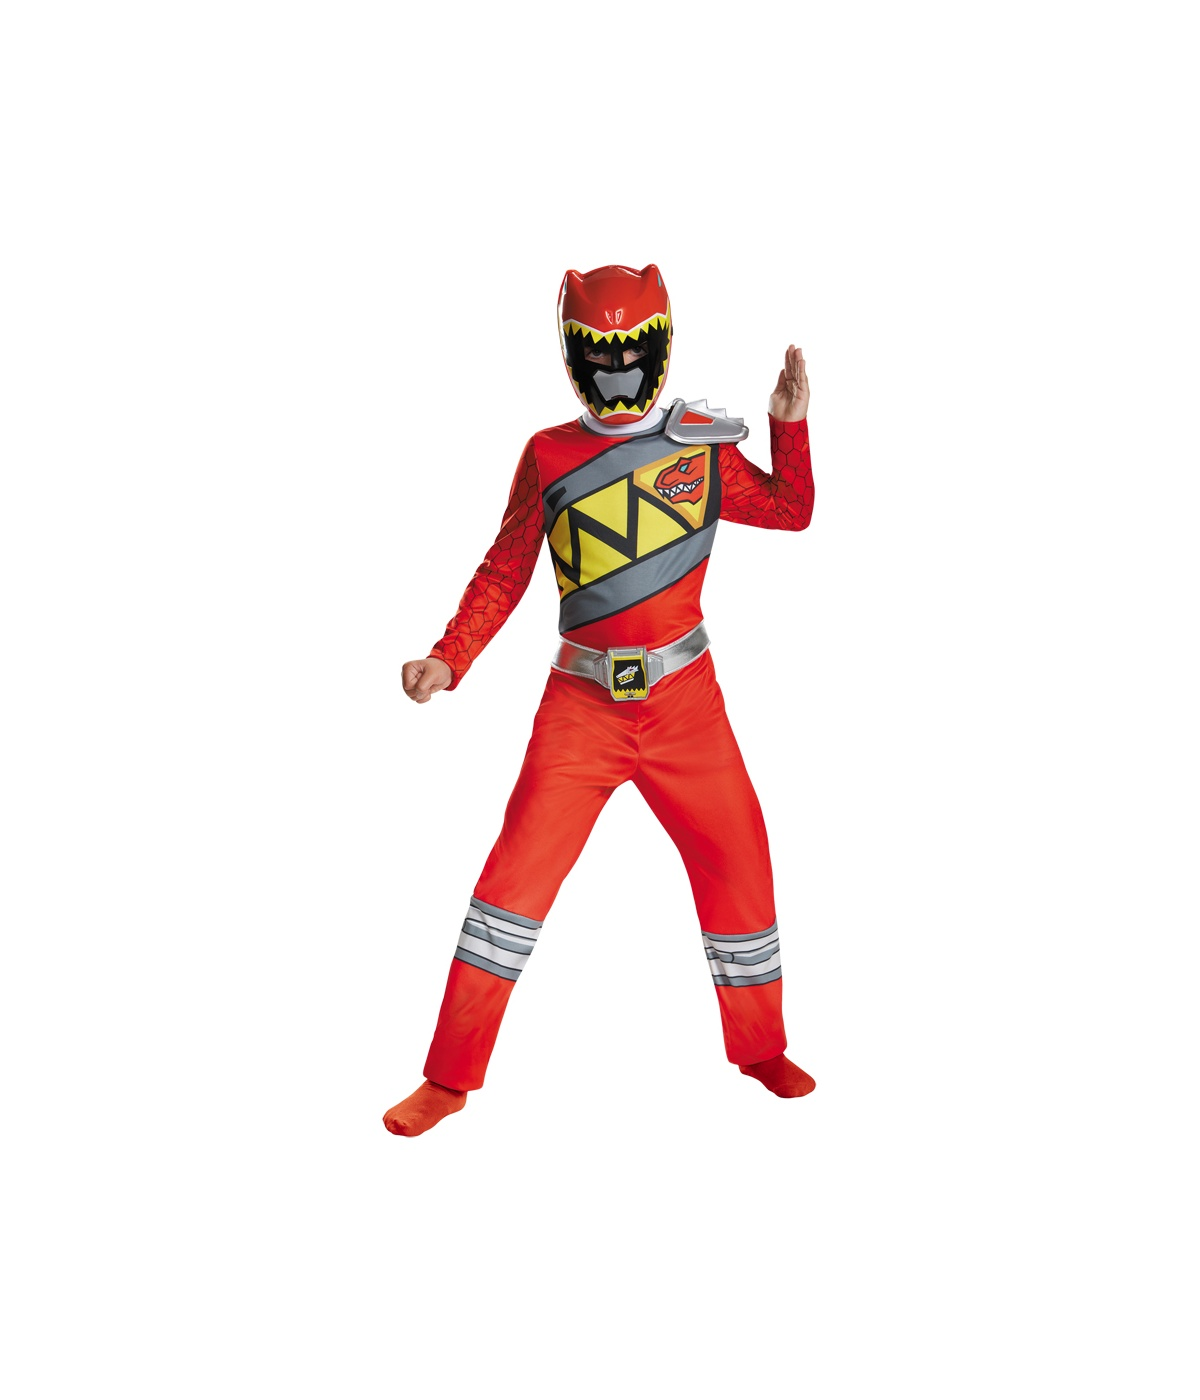 Dino Charge Power Rangers Red Ranger big Boys Costume by